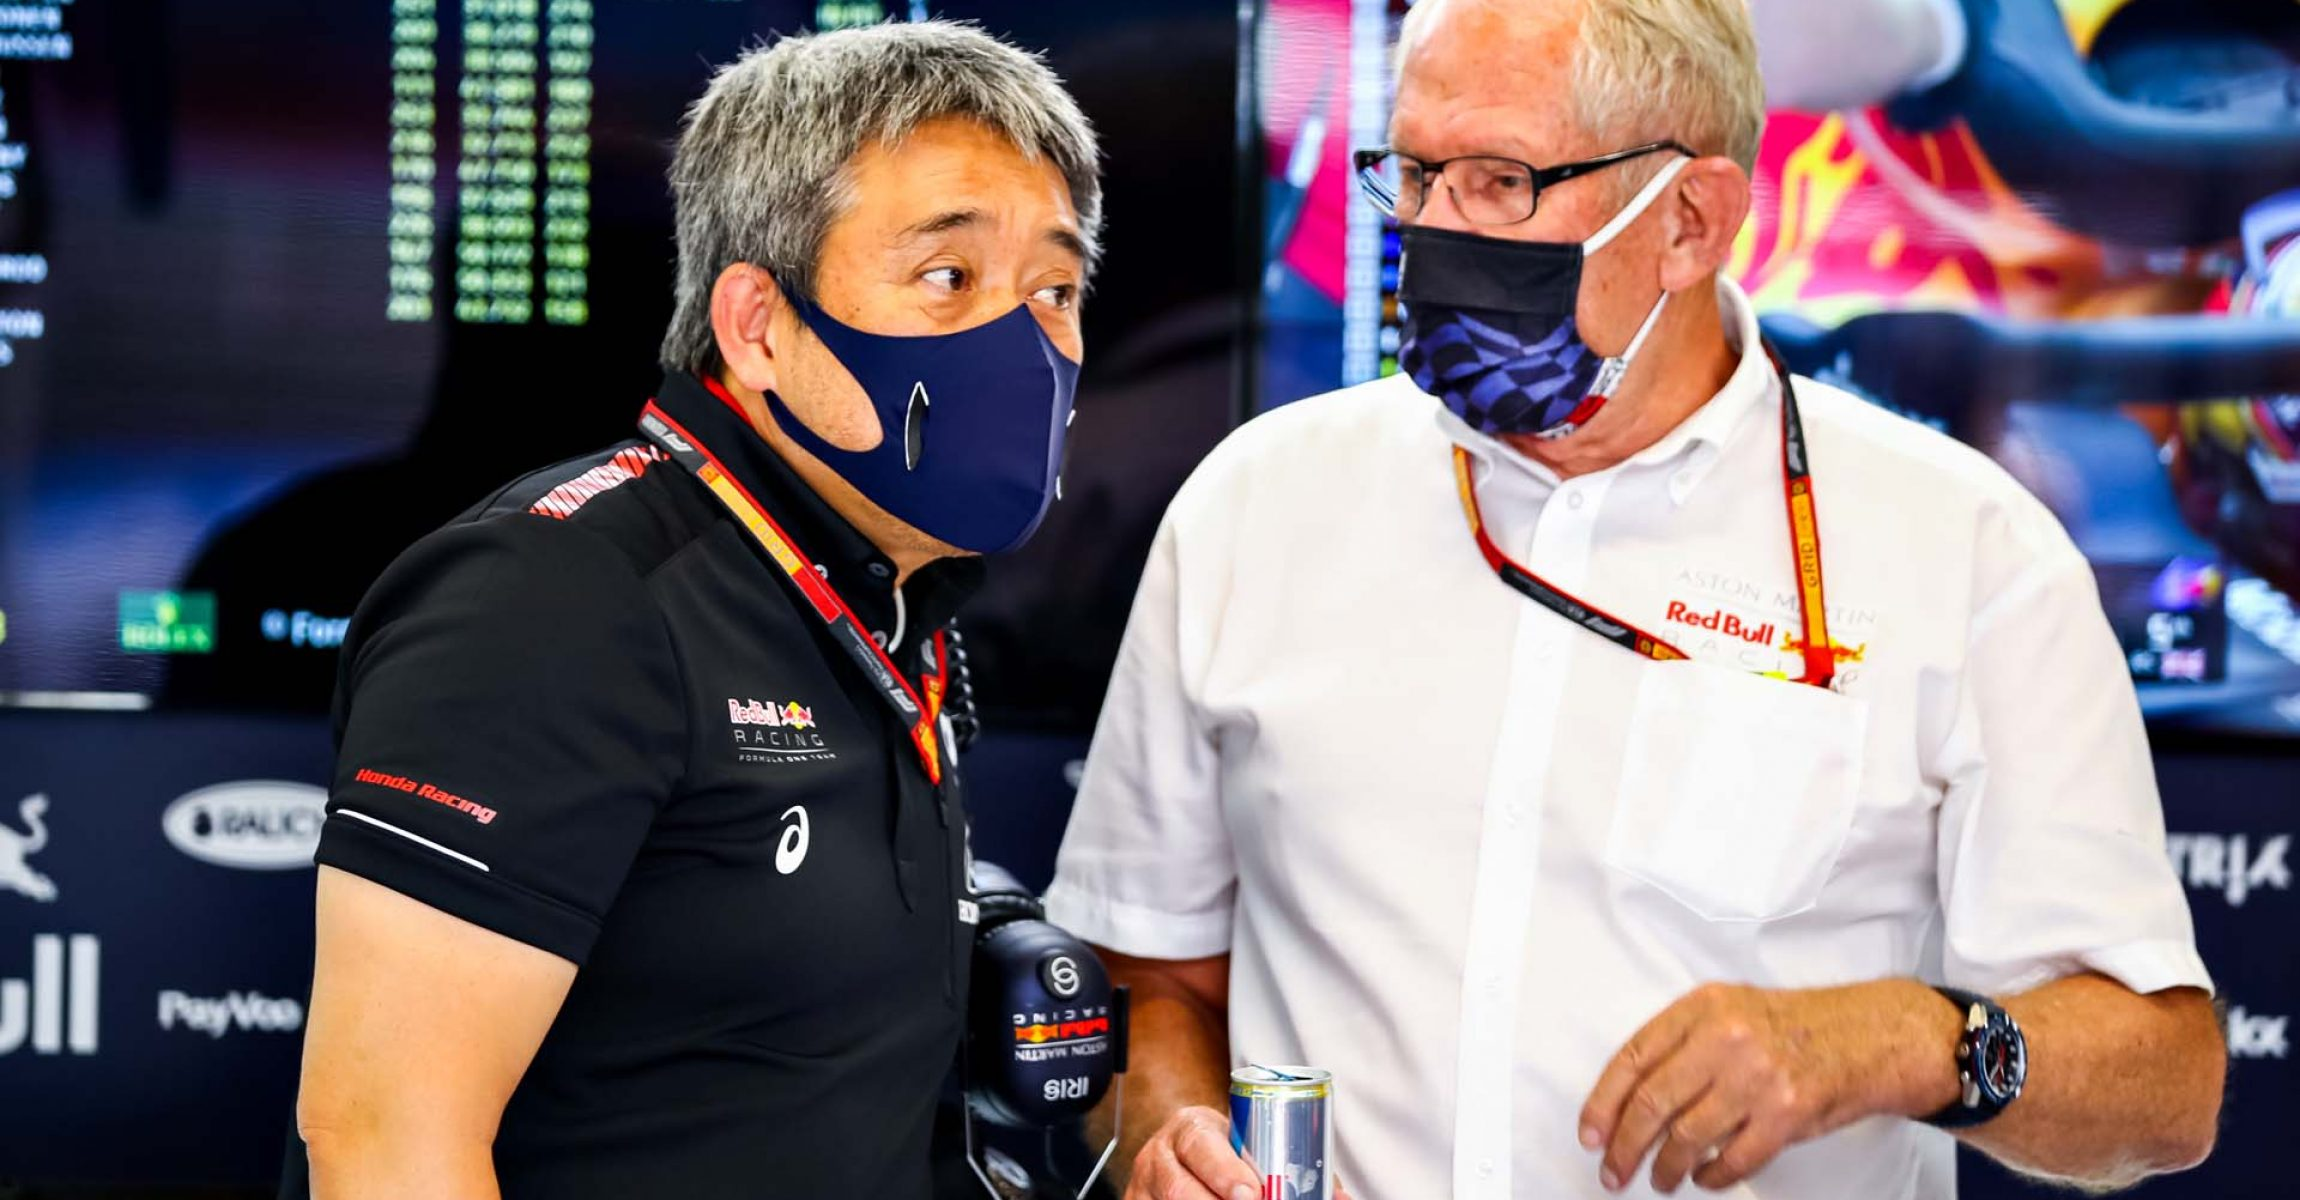 BARCELONA, SPAIN - AUGUST 14: Red Bull Racing Team Consultant Dr Helmut Marko and Masashi Yamamoto of Honda talk in the garage during practice for the F1 Grand Prix of Spain at Circuit de Barcelona-Catalunya on August 14, 2020 in Barcelona, Spain. (Photo by Mark Thompson/Getty Images)